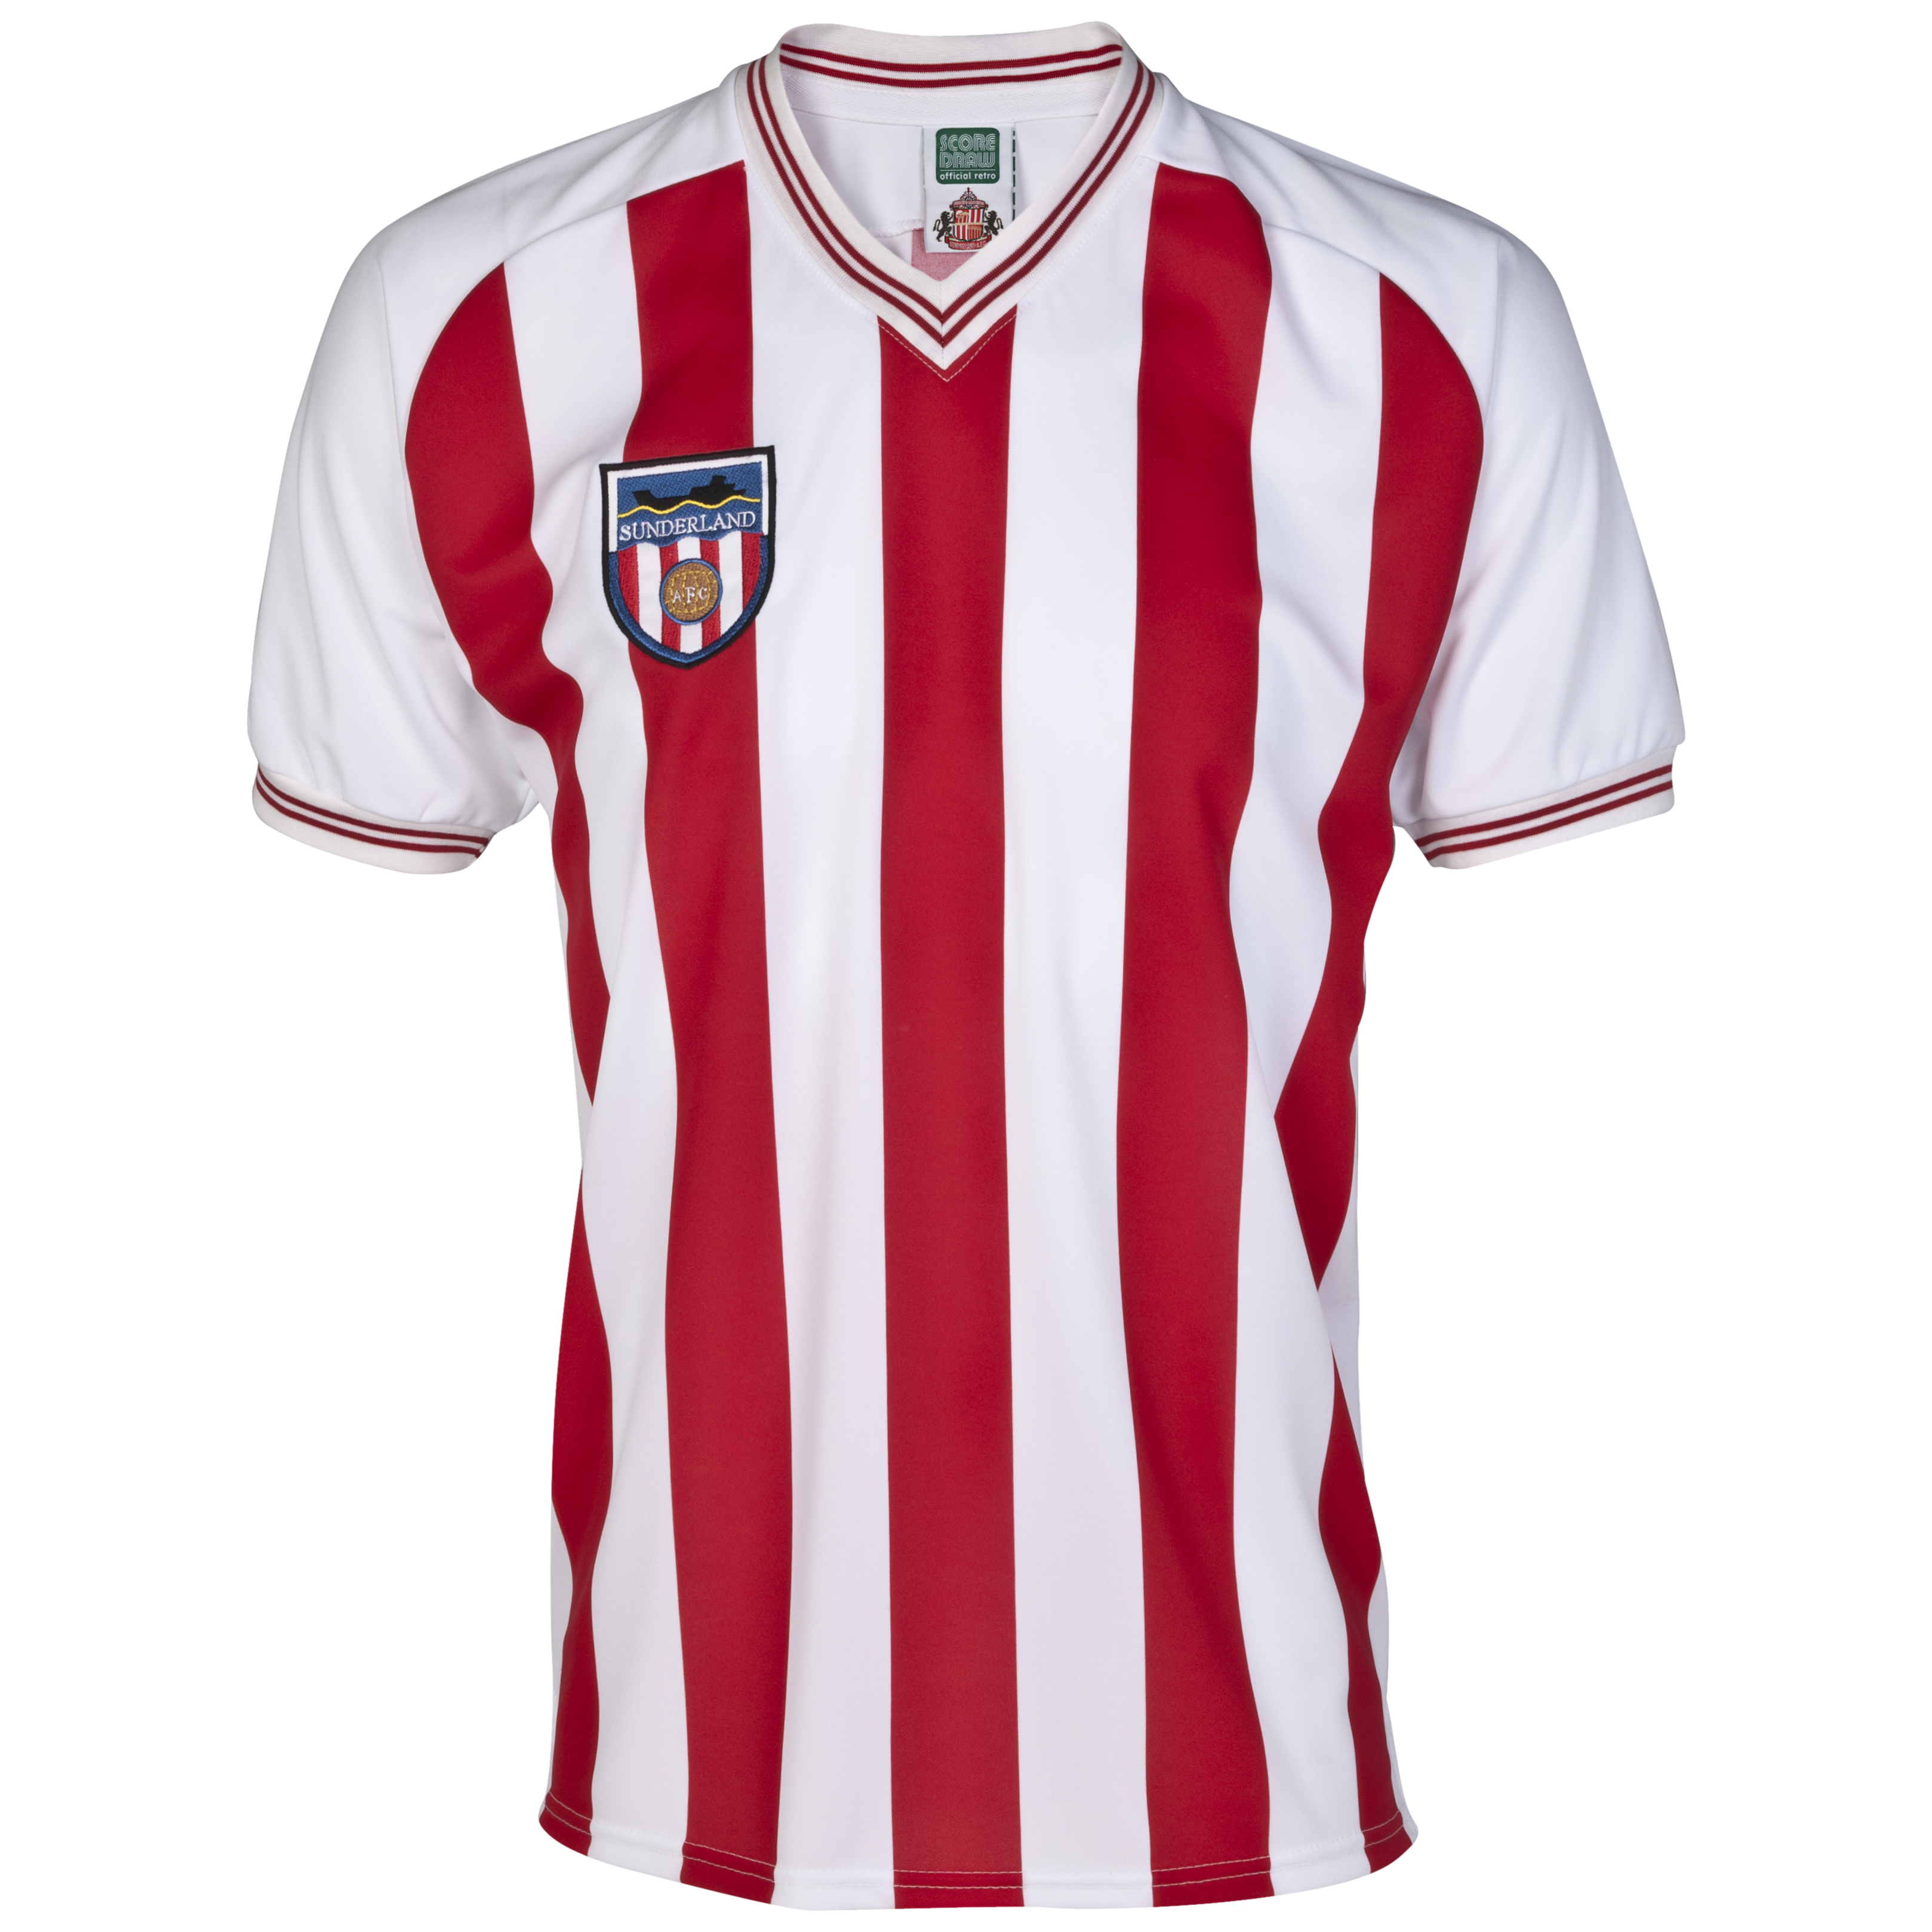 Buy Sunderland 1984 Home Kit